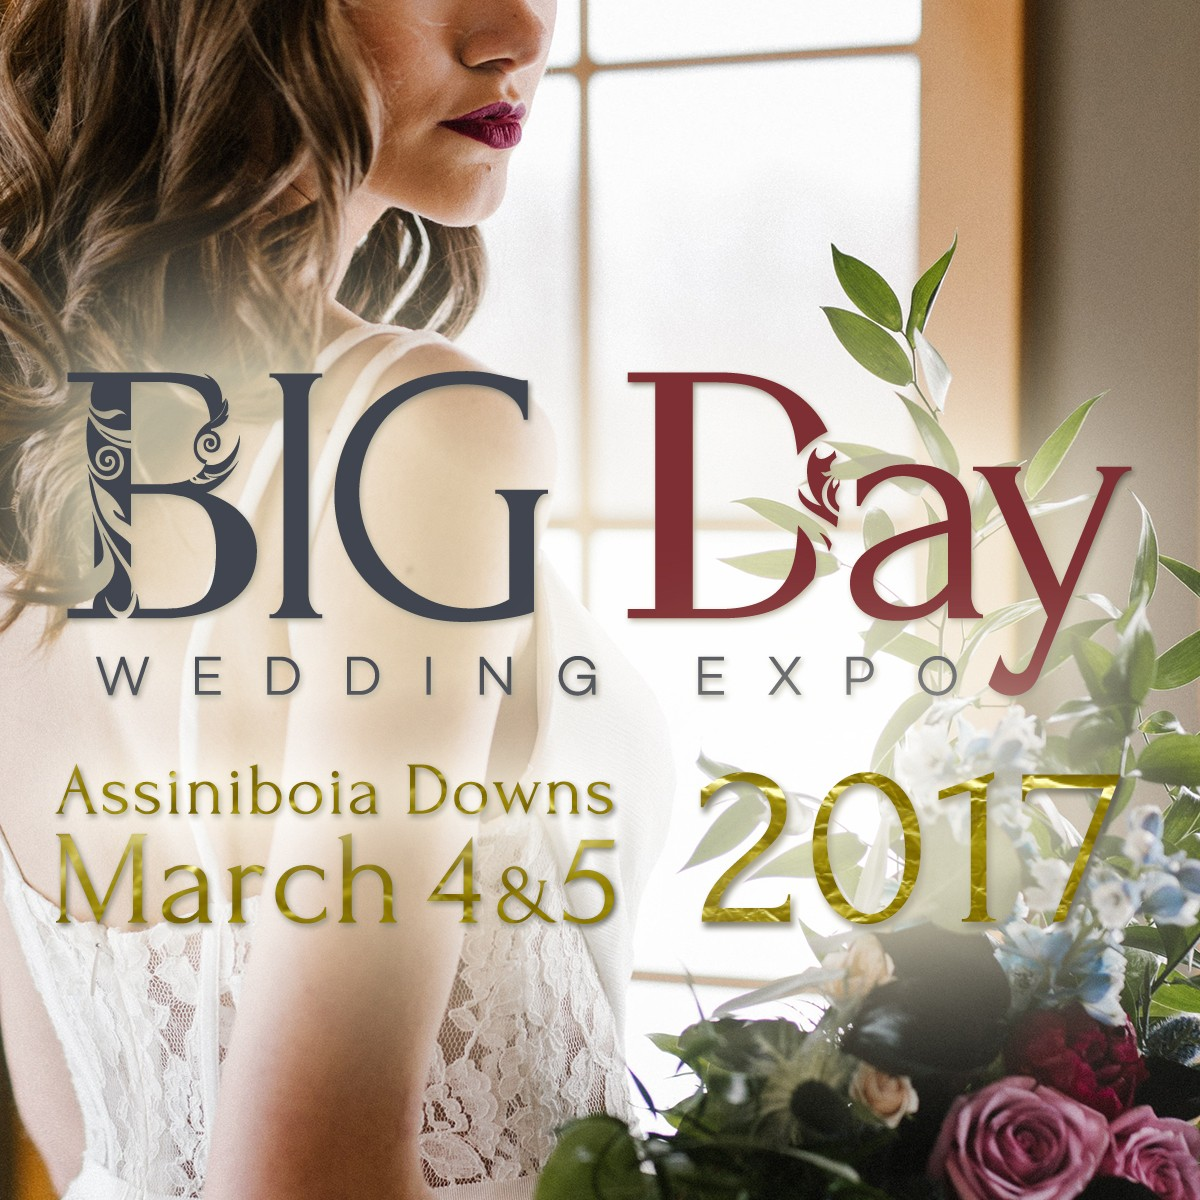 Winnipeg Wedding Show ~ The Big Day Wedding Expo